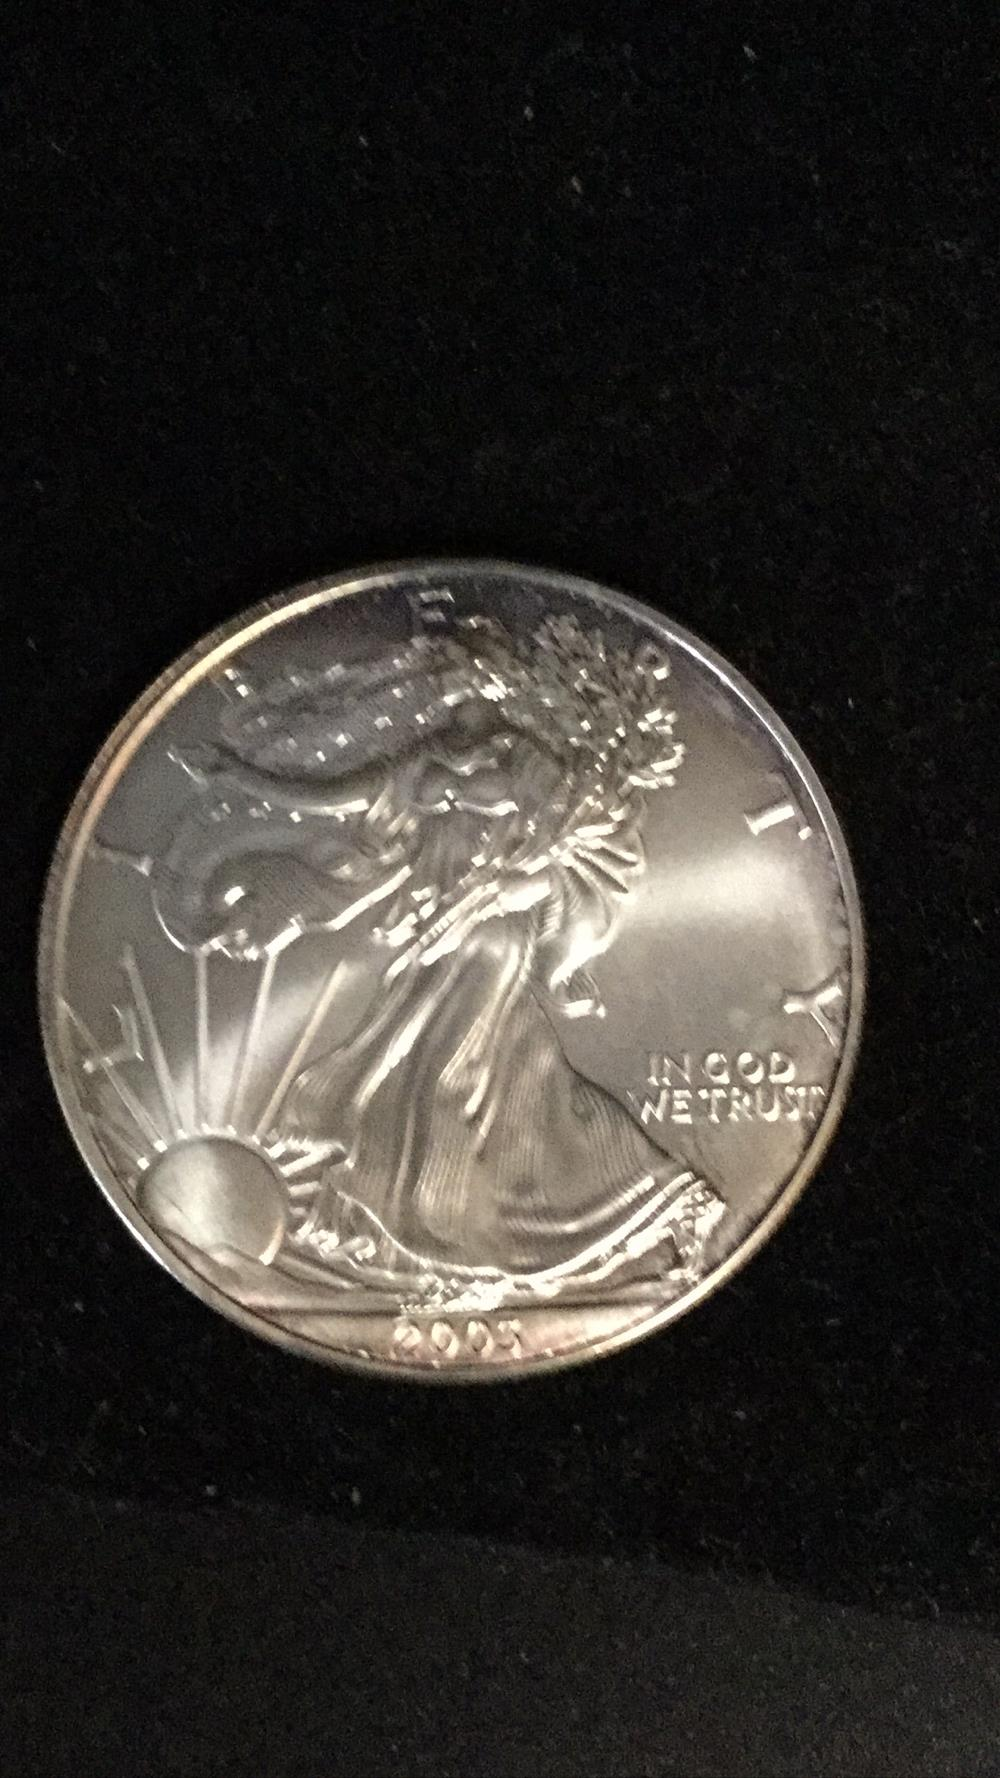 American eagle dollar coin